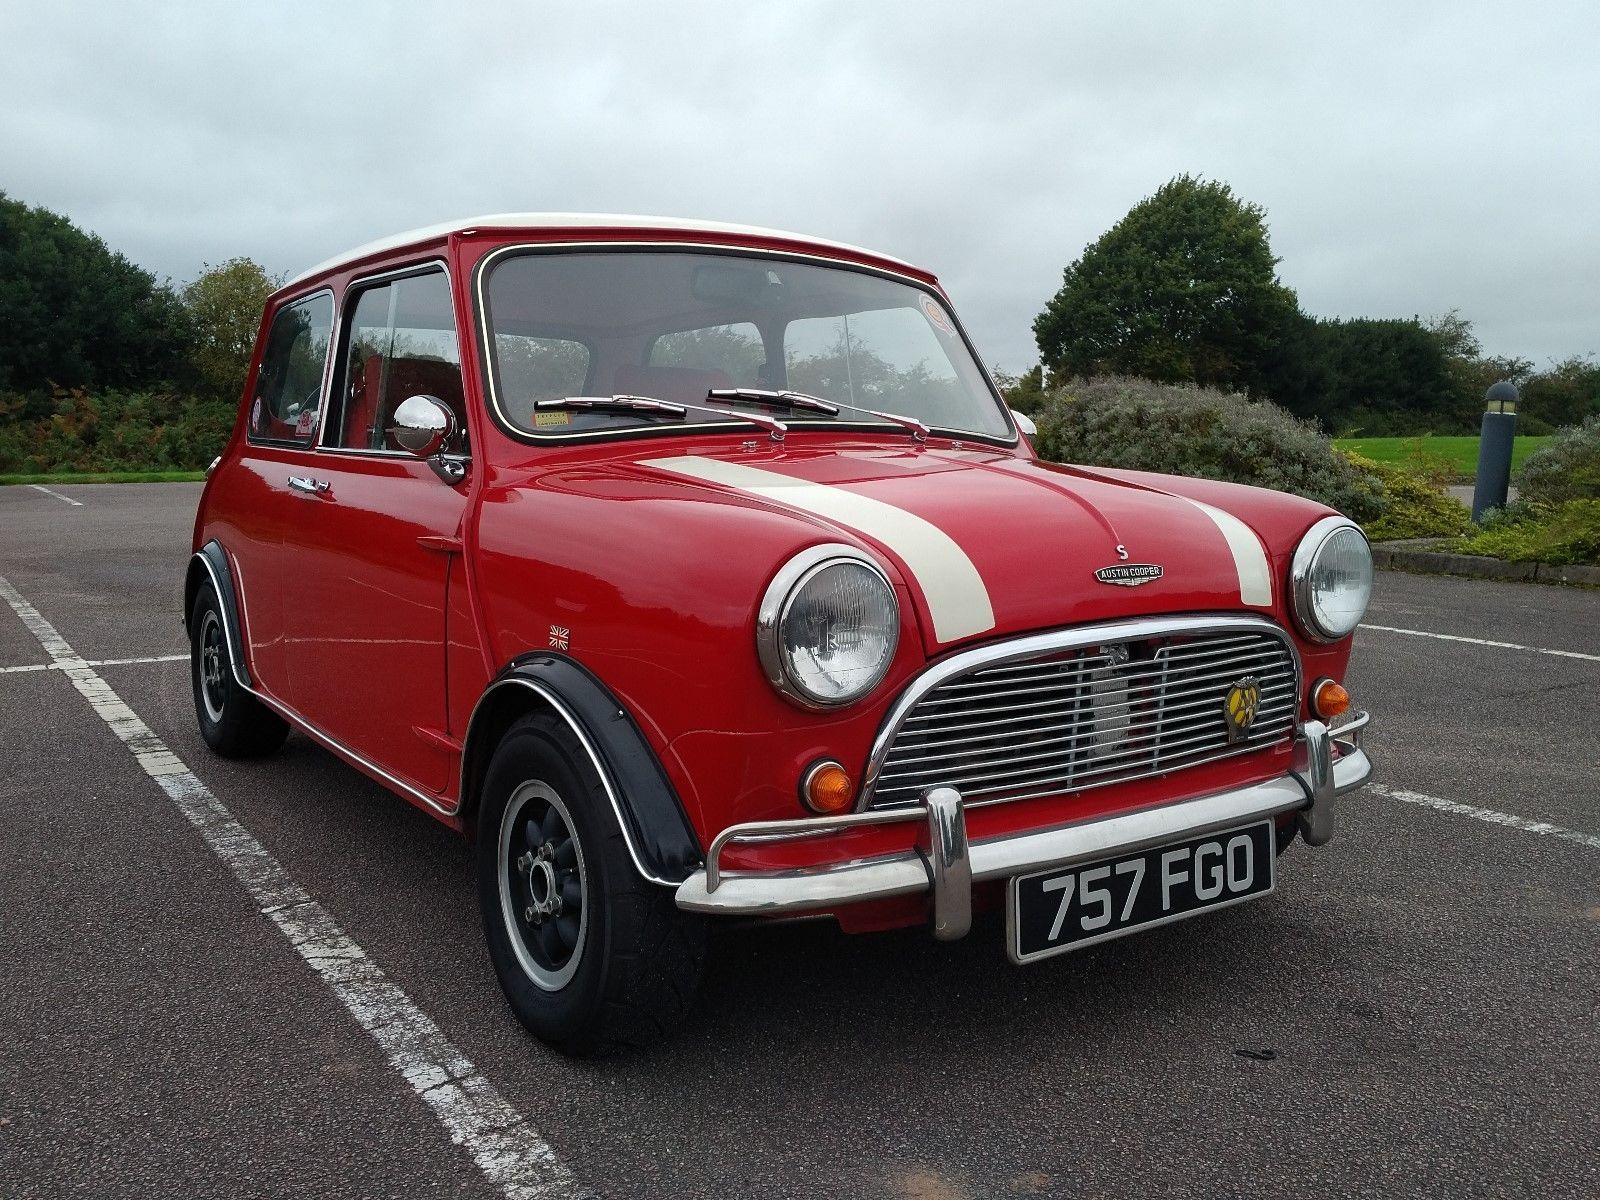 1962 Mk1 Austin Mini Cooper S evocation NR | Mk1, Vehicle and Cars